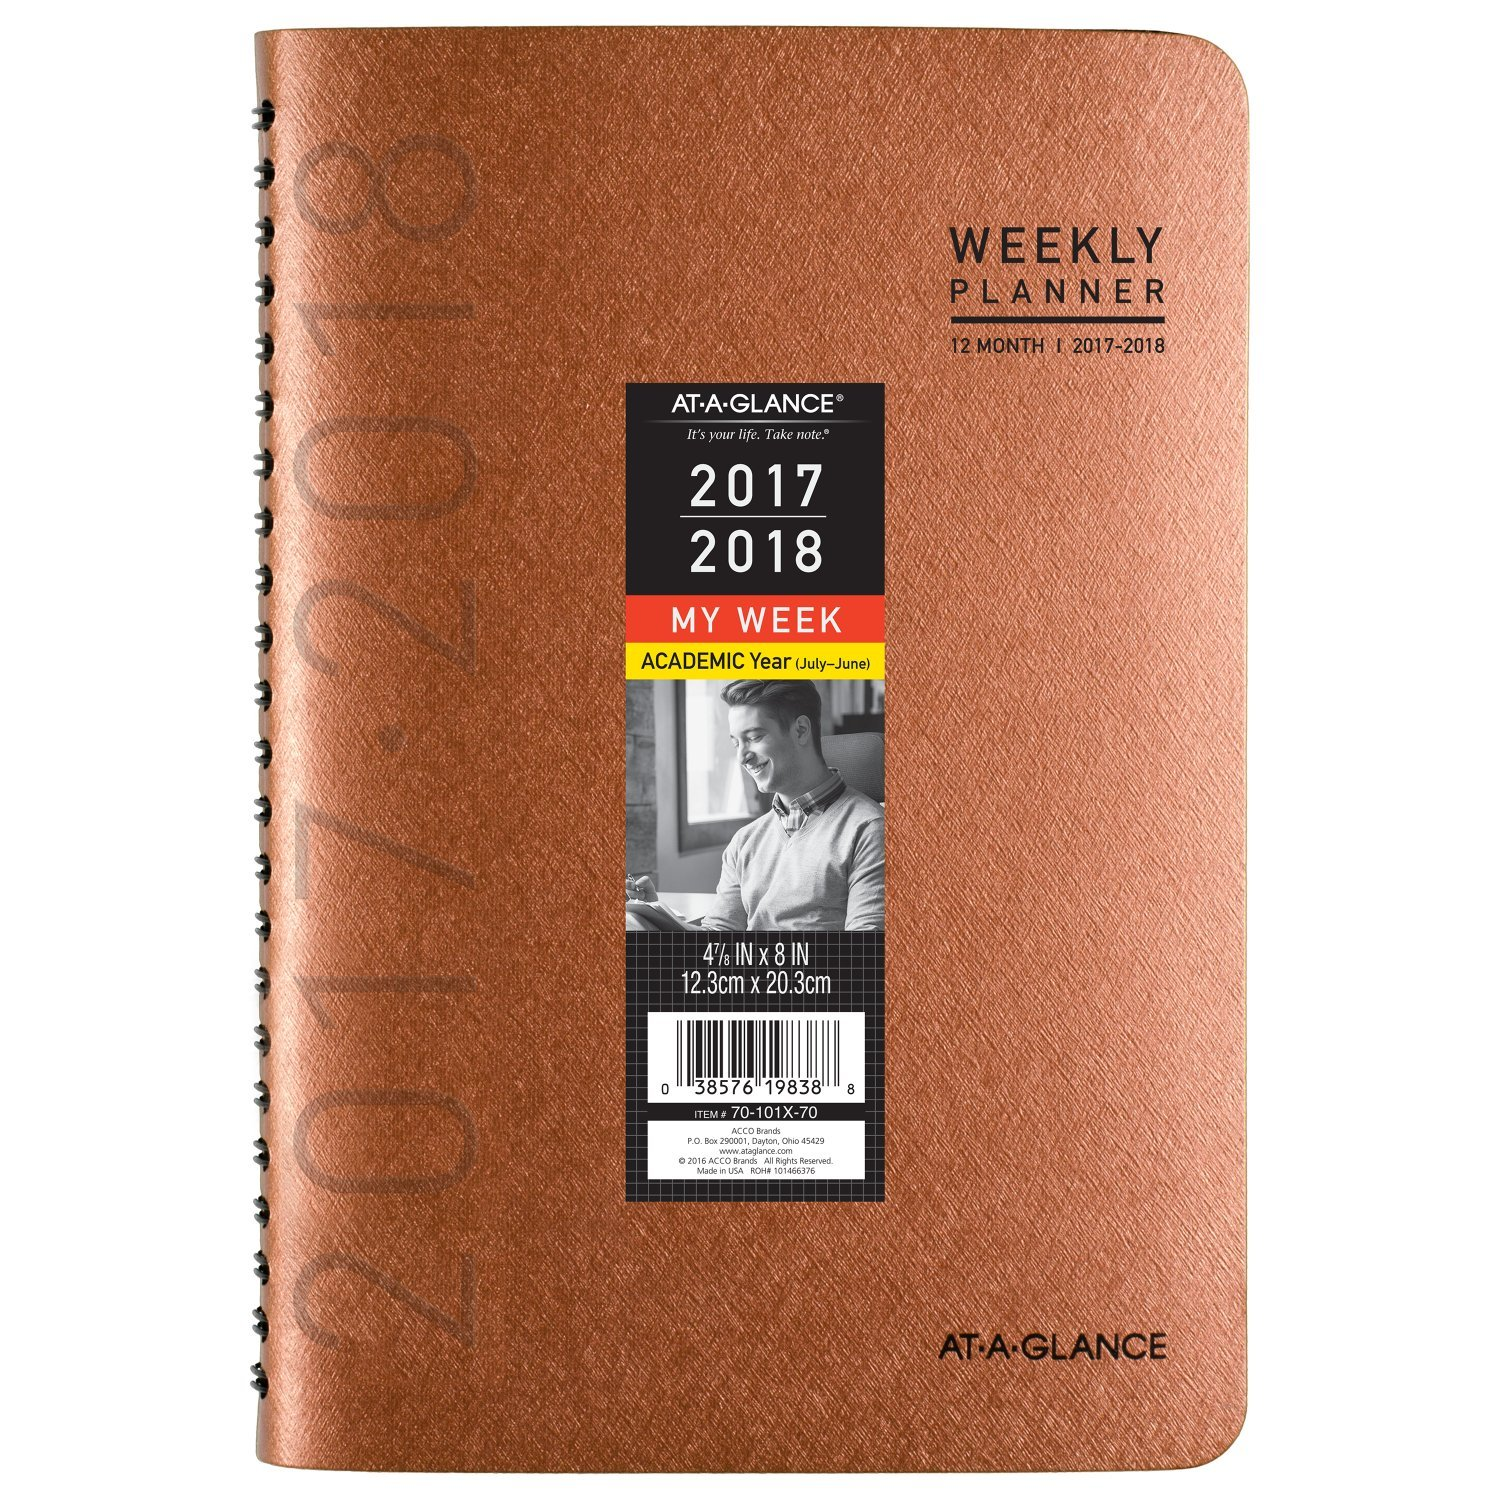 AT-A-GLANCE Academic Weekly / Monthly Planner, July 2017 - June 2018, 4-7/8